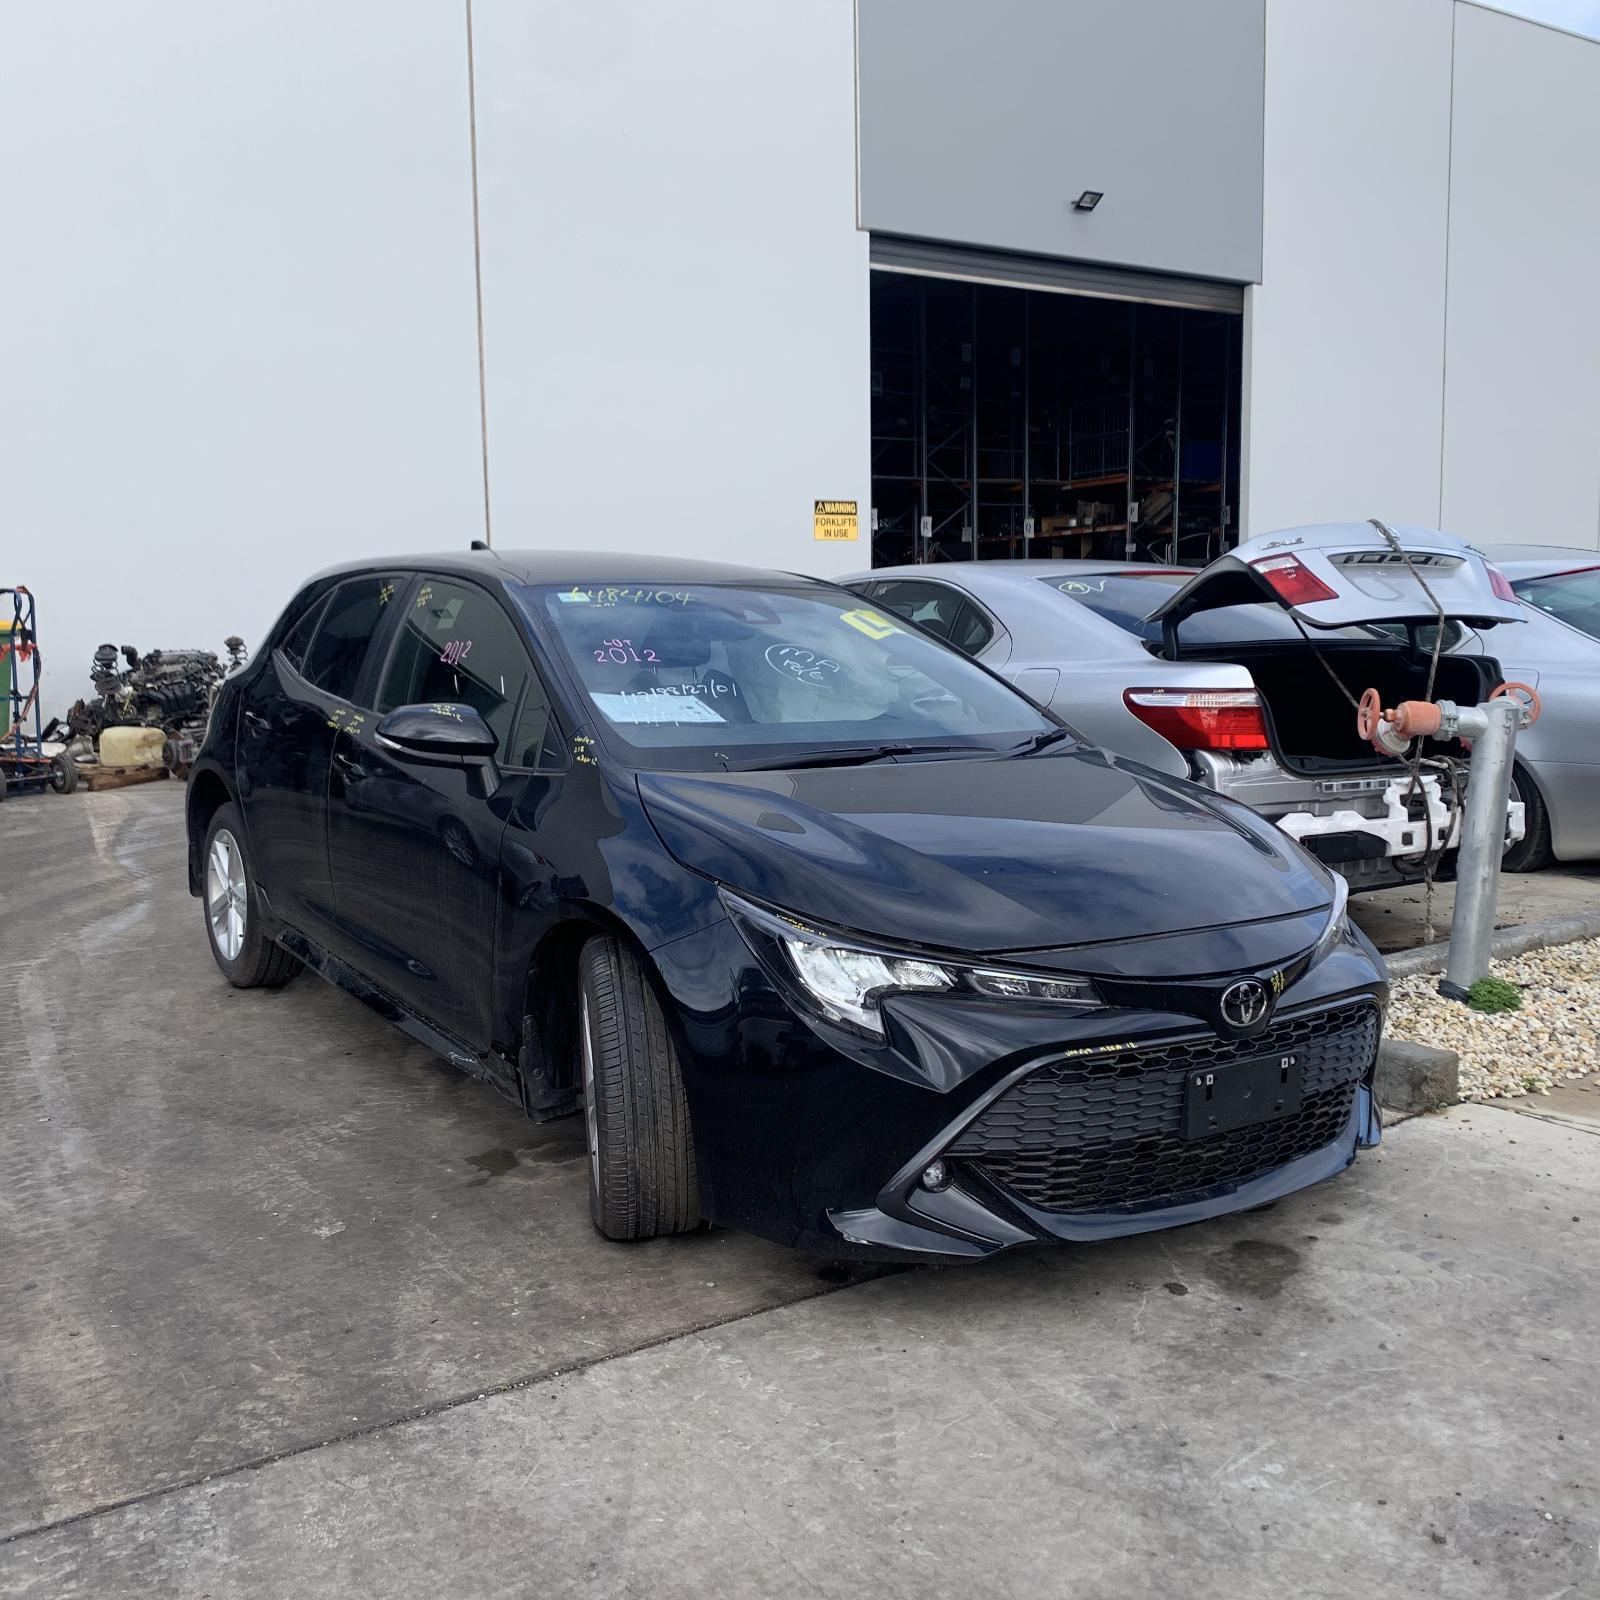 Toyota COROLLA MZEA12R SX M20A-FKS 2.0L Engine Automatic FWD Transmission 07/18 - Current